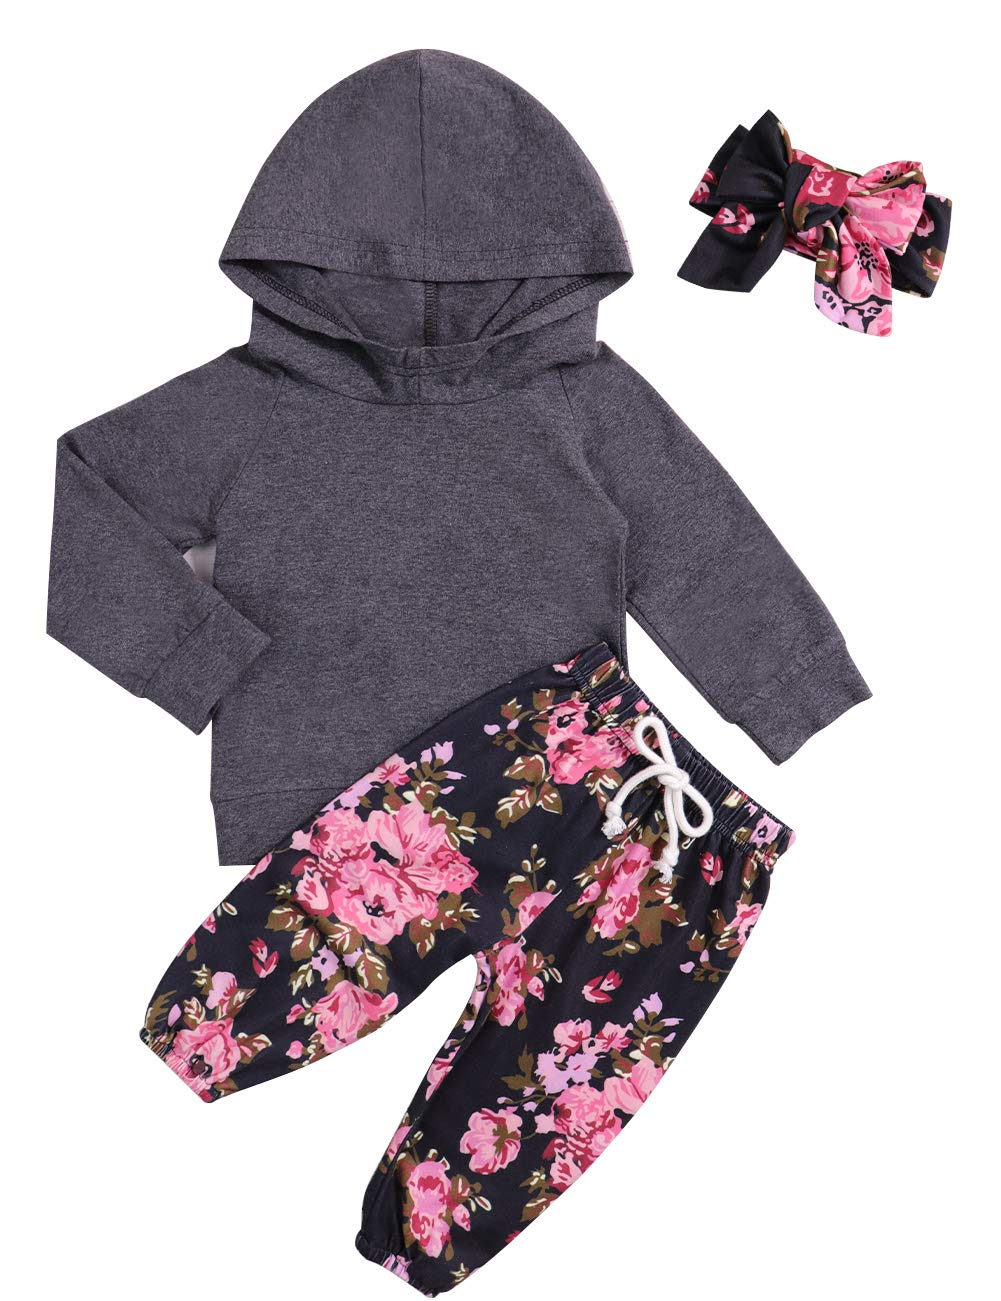 ceca950dd4eb Galleon - Baby Girls Clothes Long Sleeve Grey Hoodie Tops Flowers ...